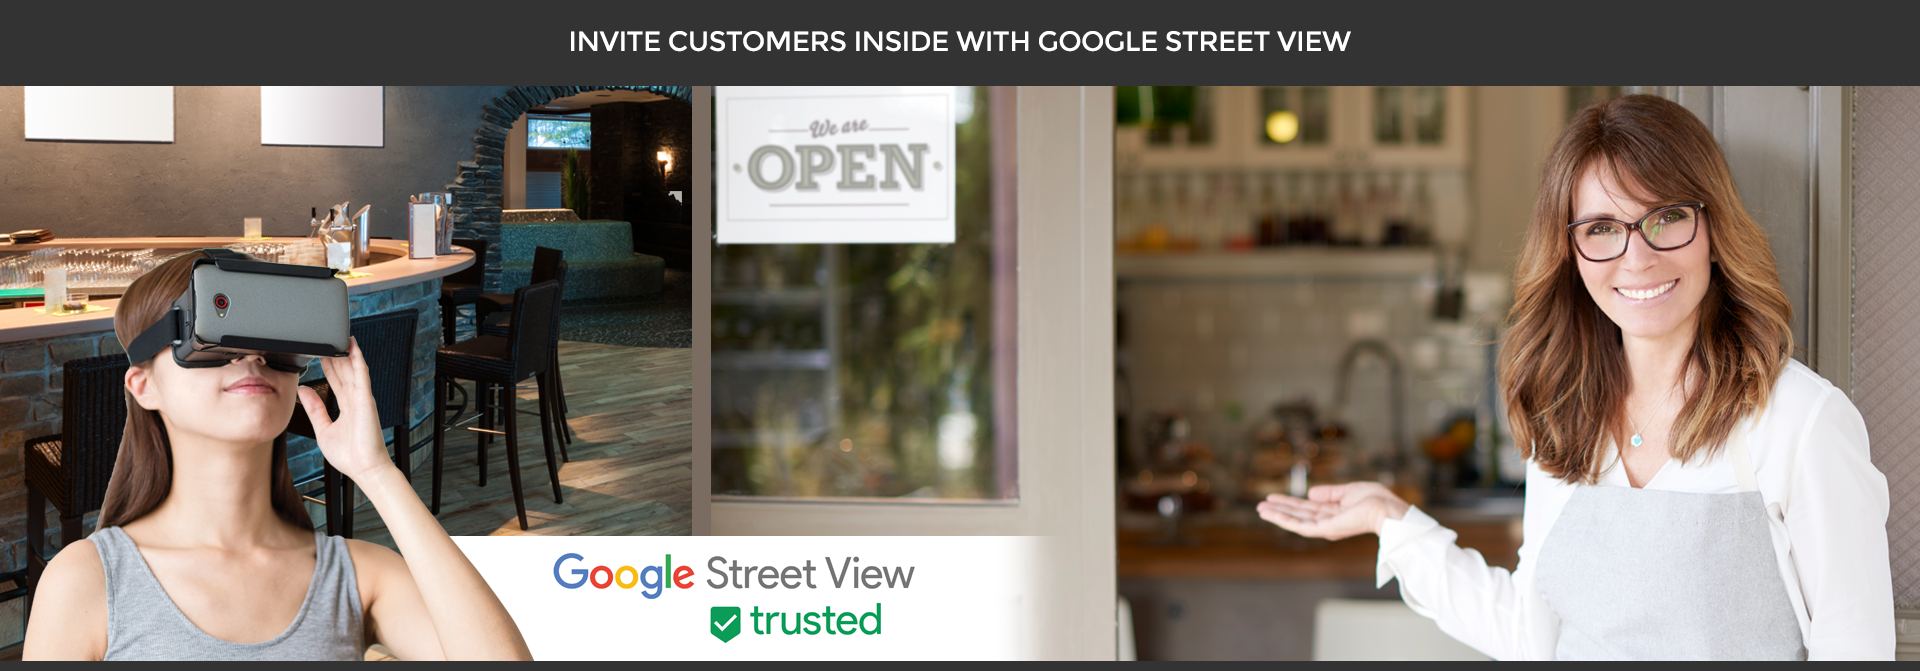 Google Street View Tours for Small Businesses